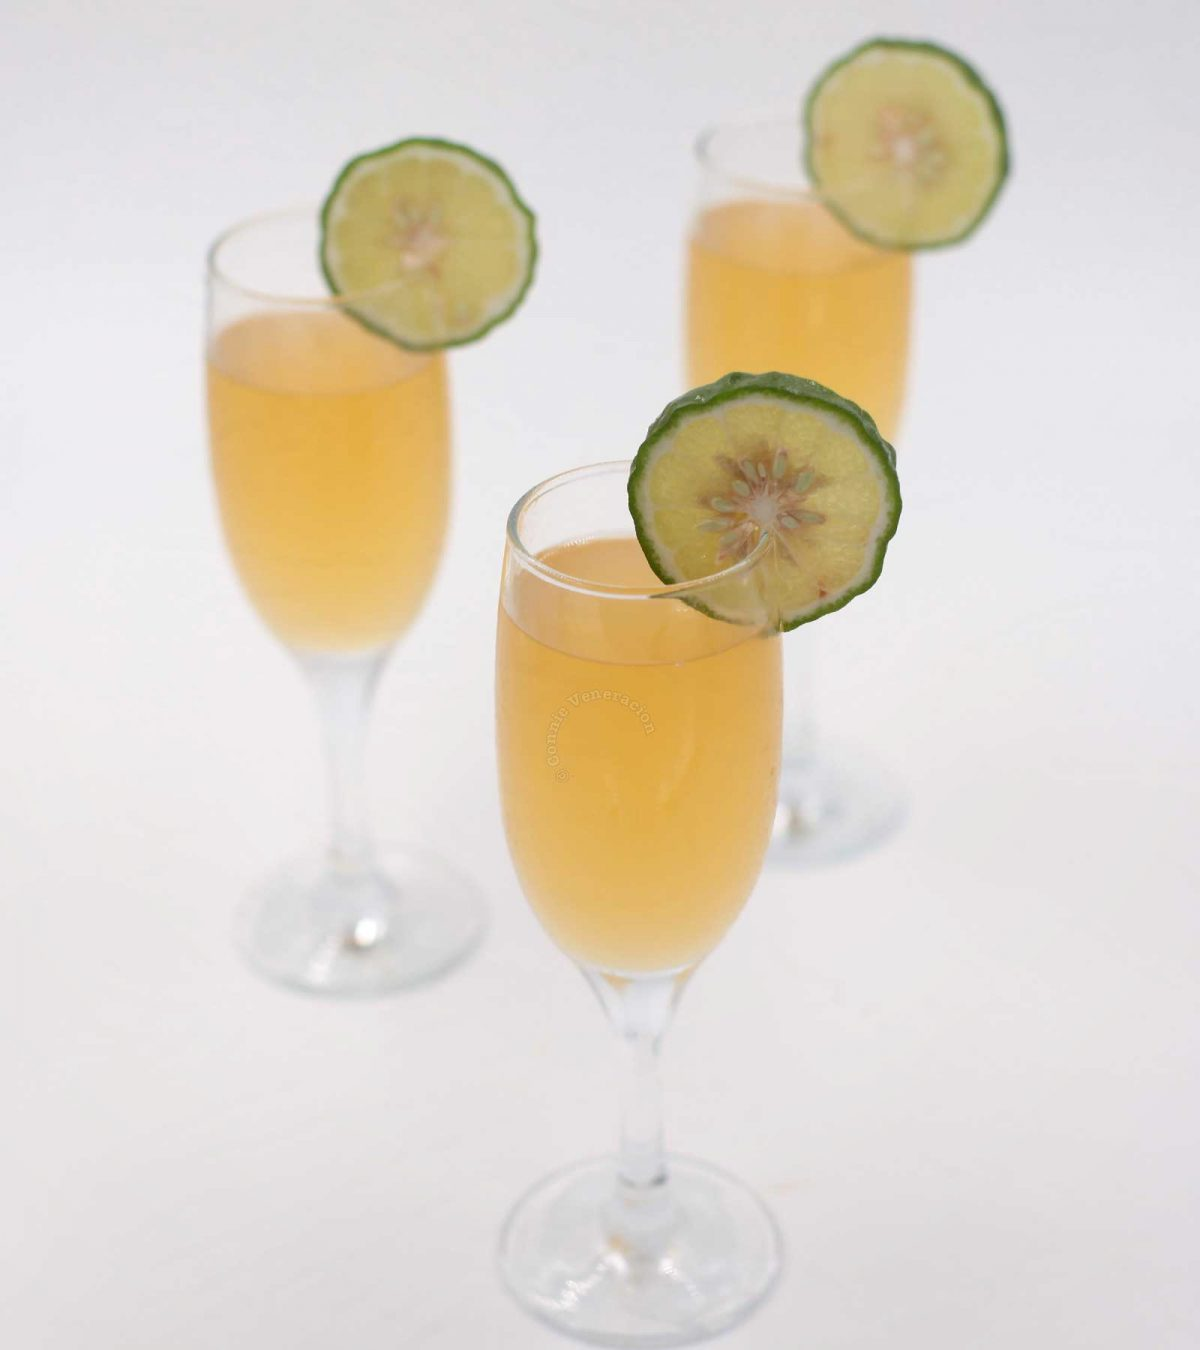 Three glasses of Lime Juice Mimosa garnished with kaffir lime slices